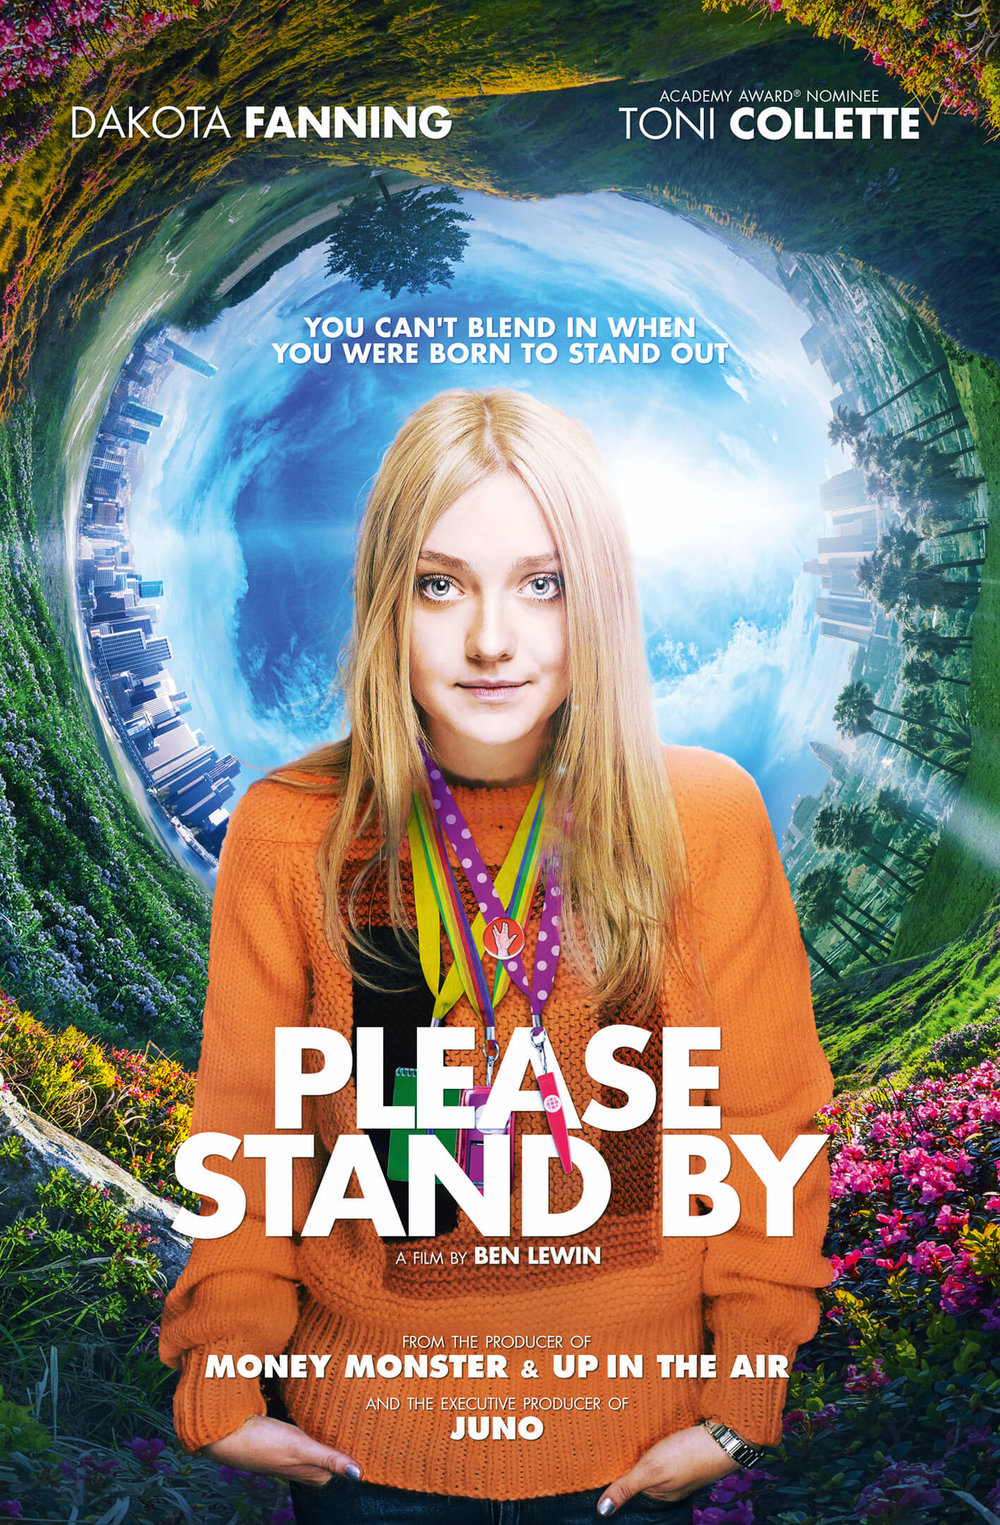 14.-Please-Stand-by.jpgtrailer-for-a-star-trek-inspired-film-called-plaese-stand-by-with-dakota-fanning1